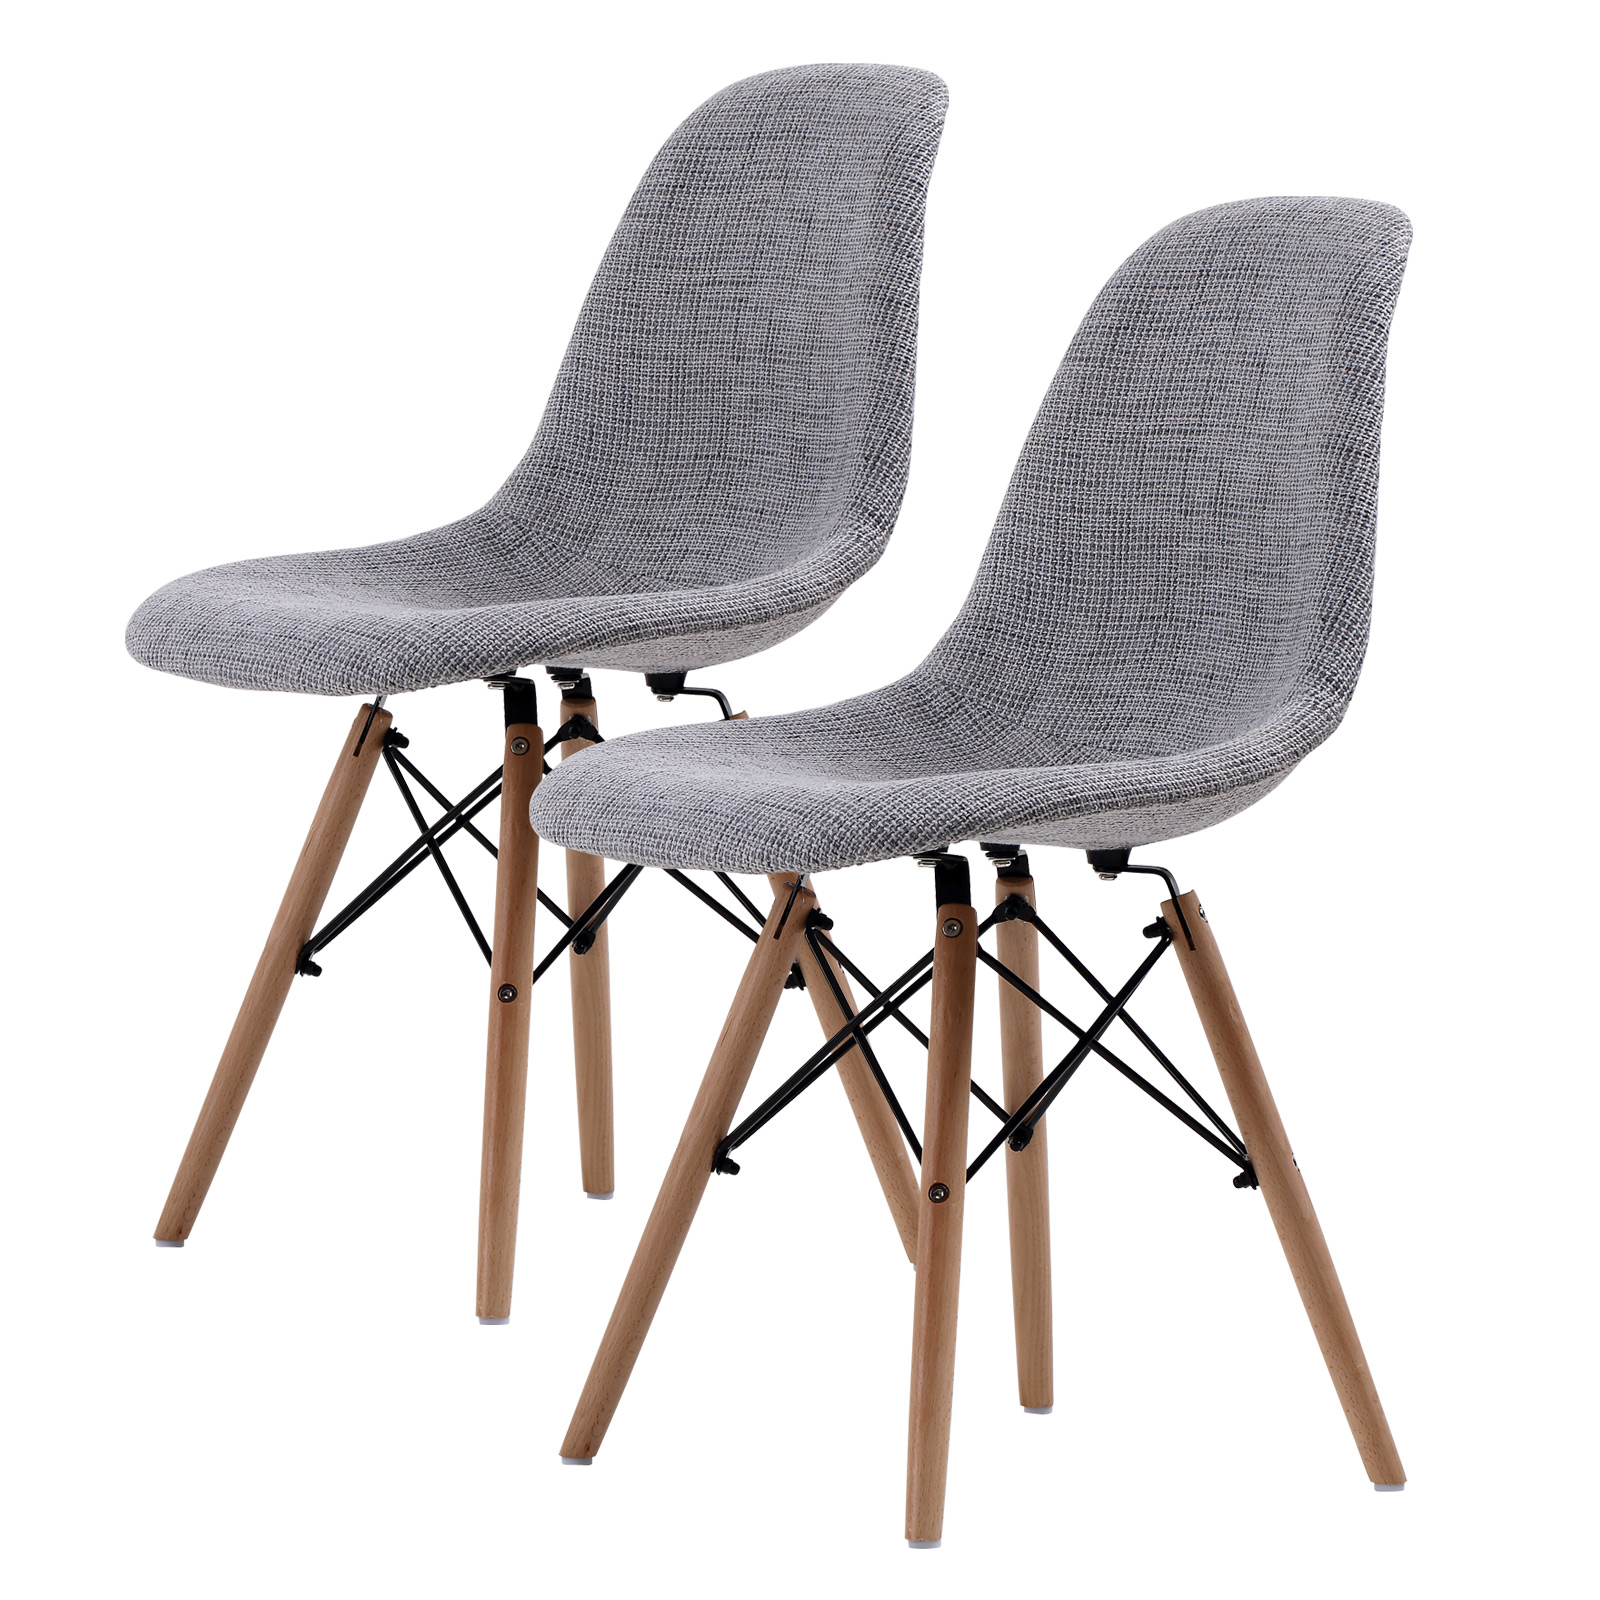 2X DSW Dining Chair Fabric - GREY